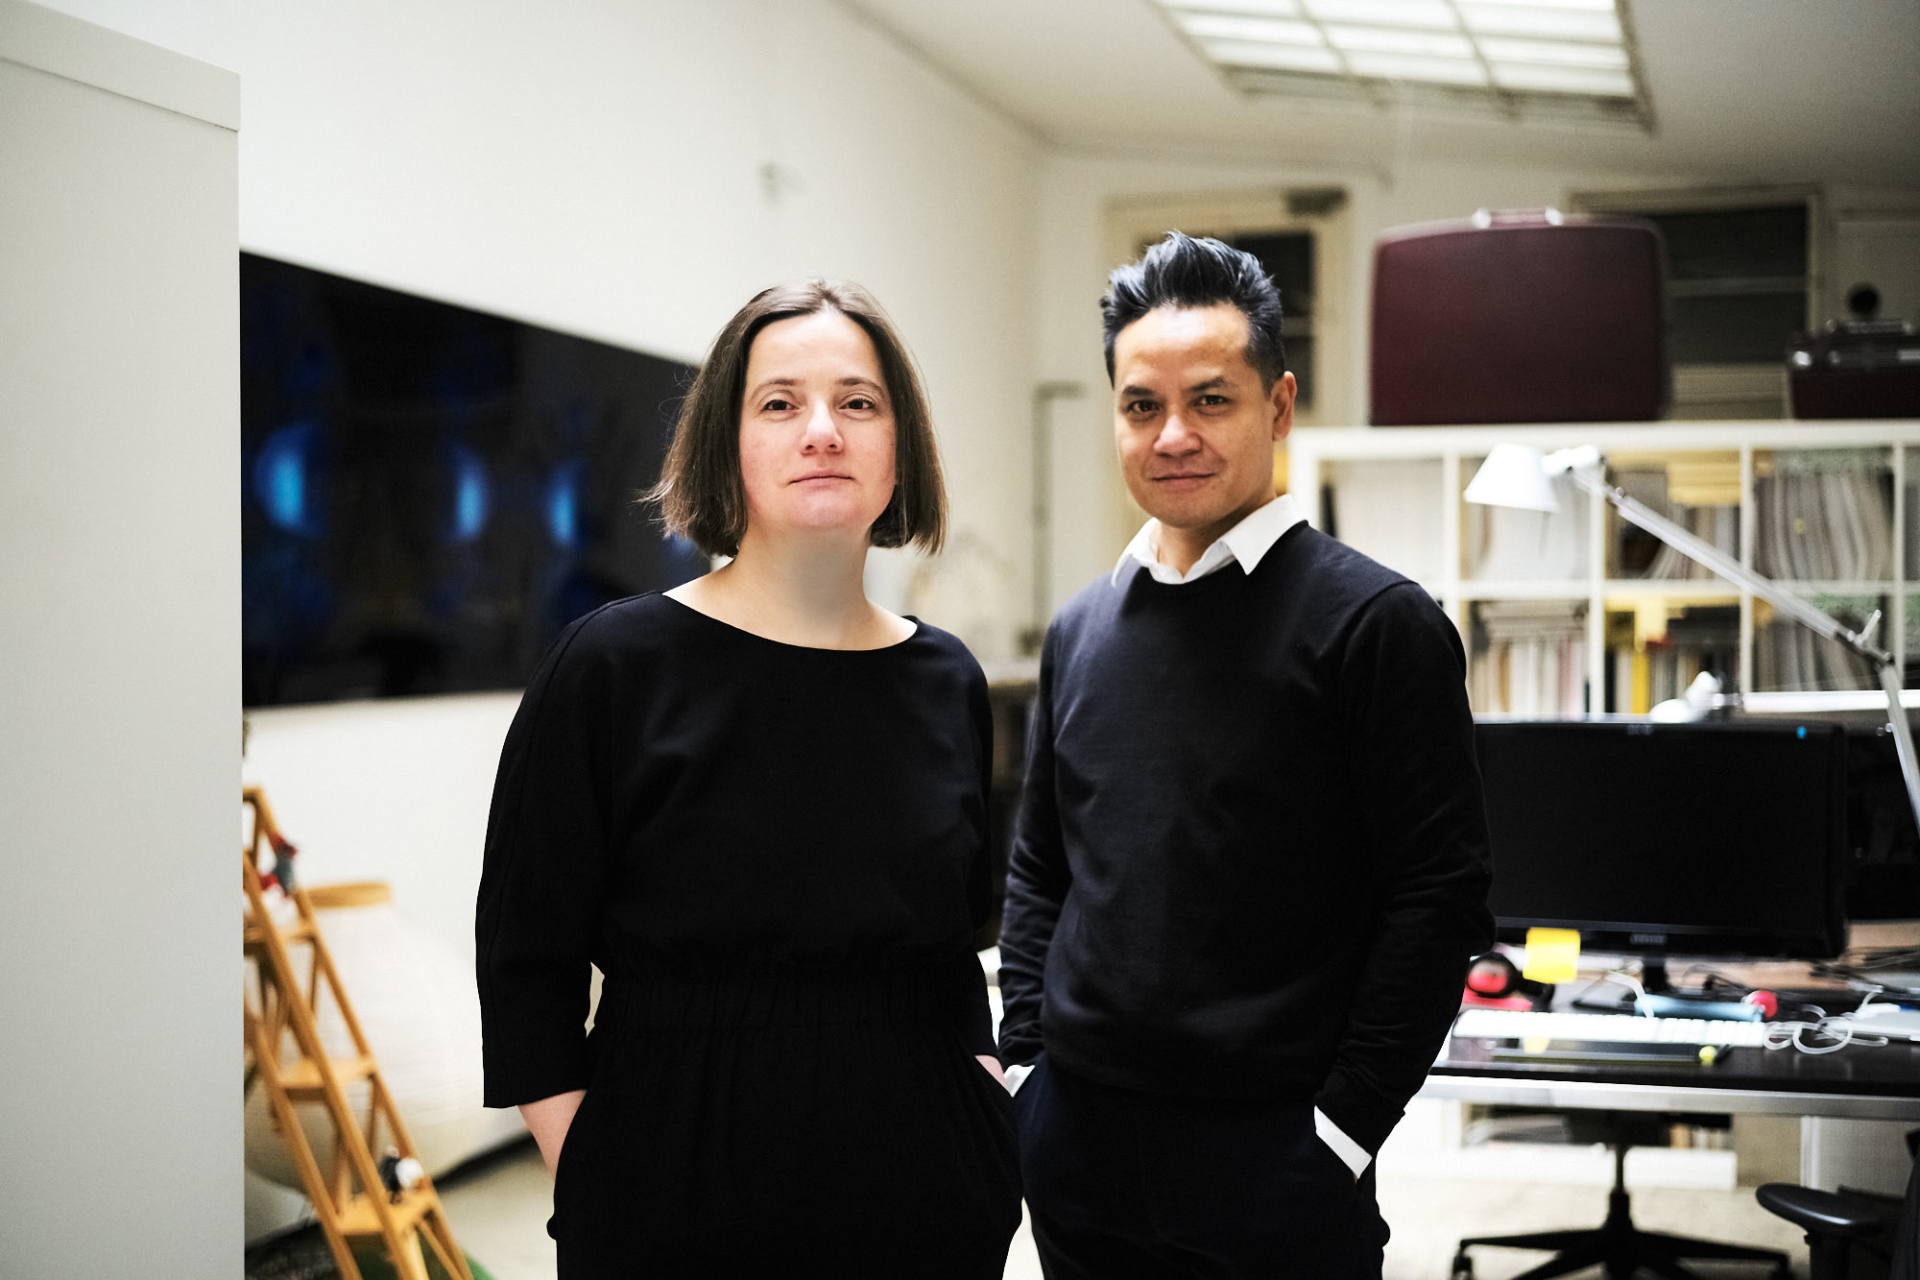 A picture of Birgit Vollmeier and Yudi Warsosumarto. The picture was taken by Andreas Jakwerth